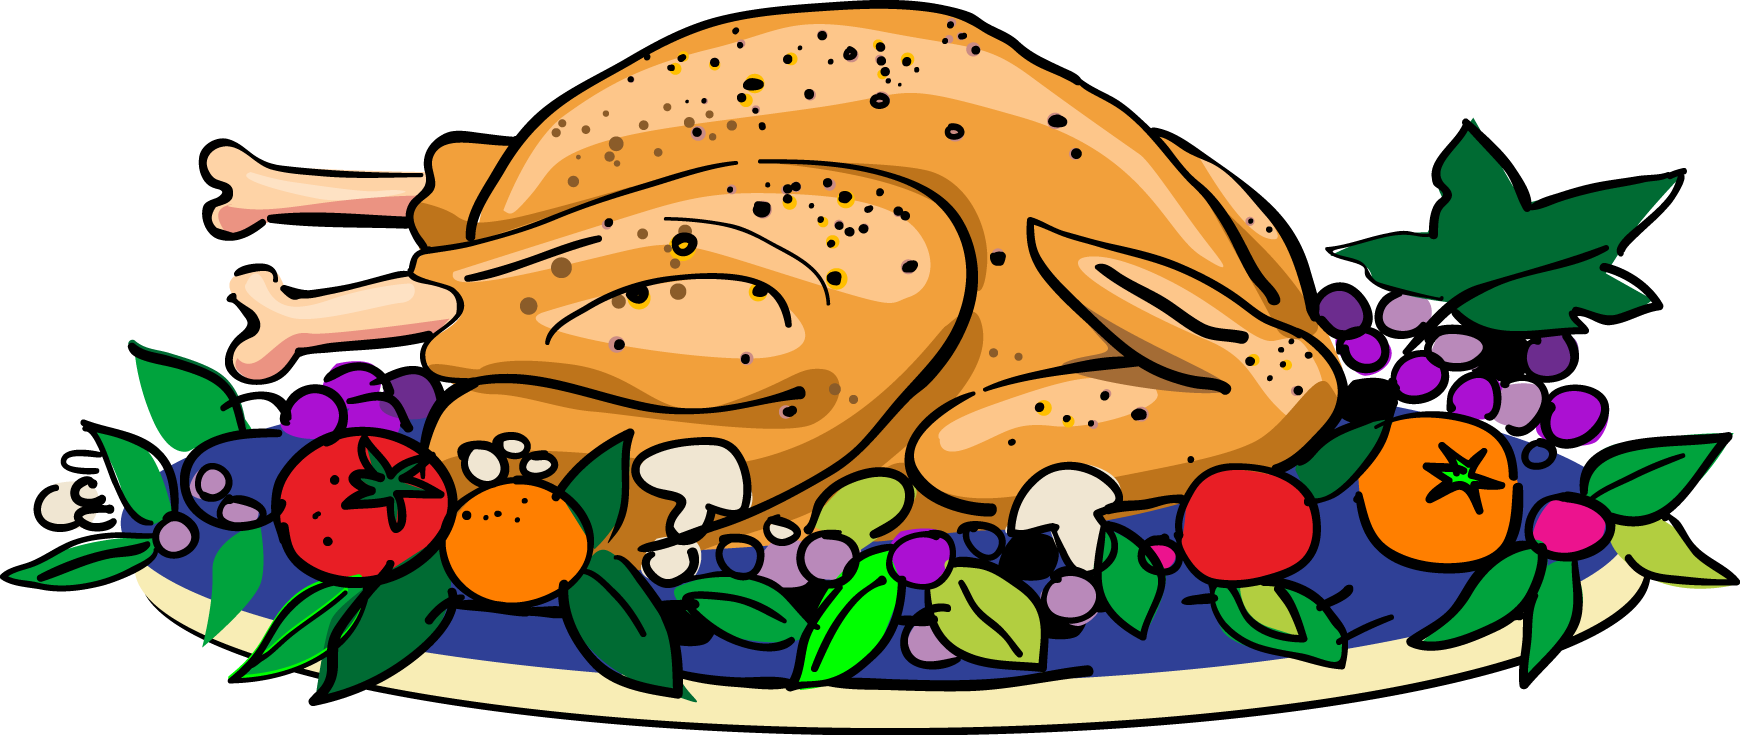 Thanksgiving meal offered clipart